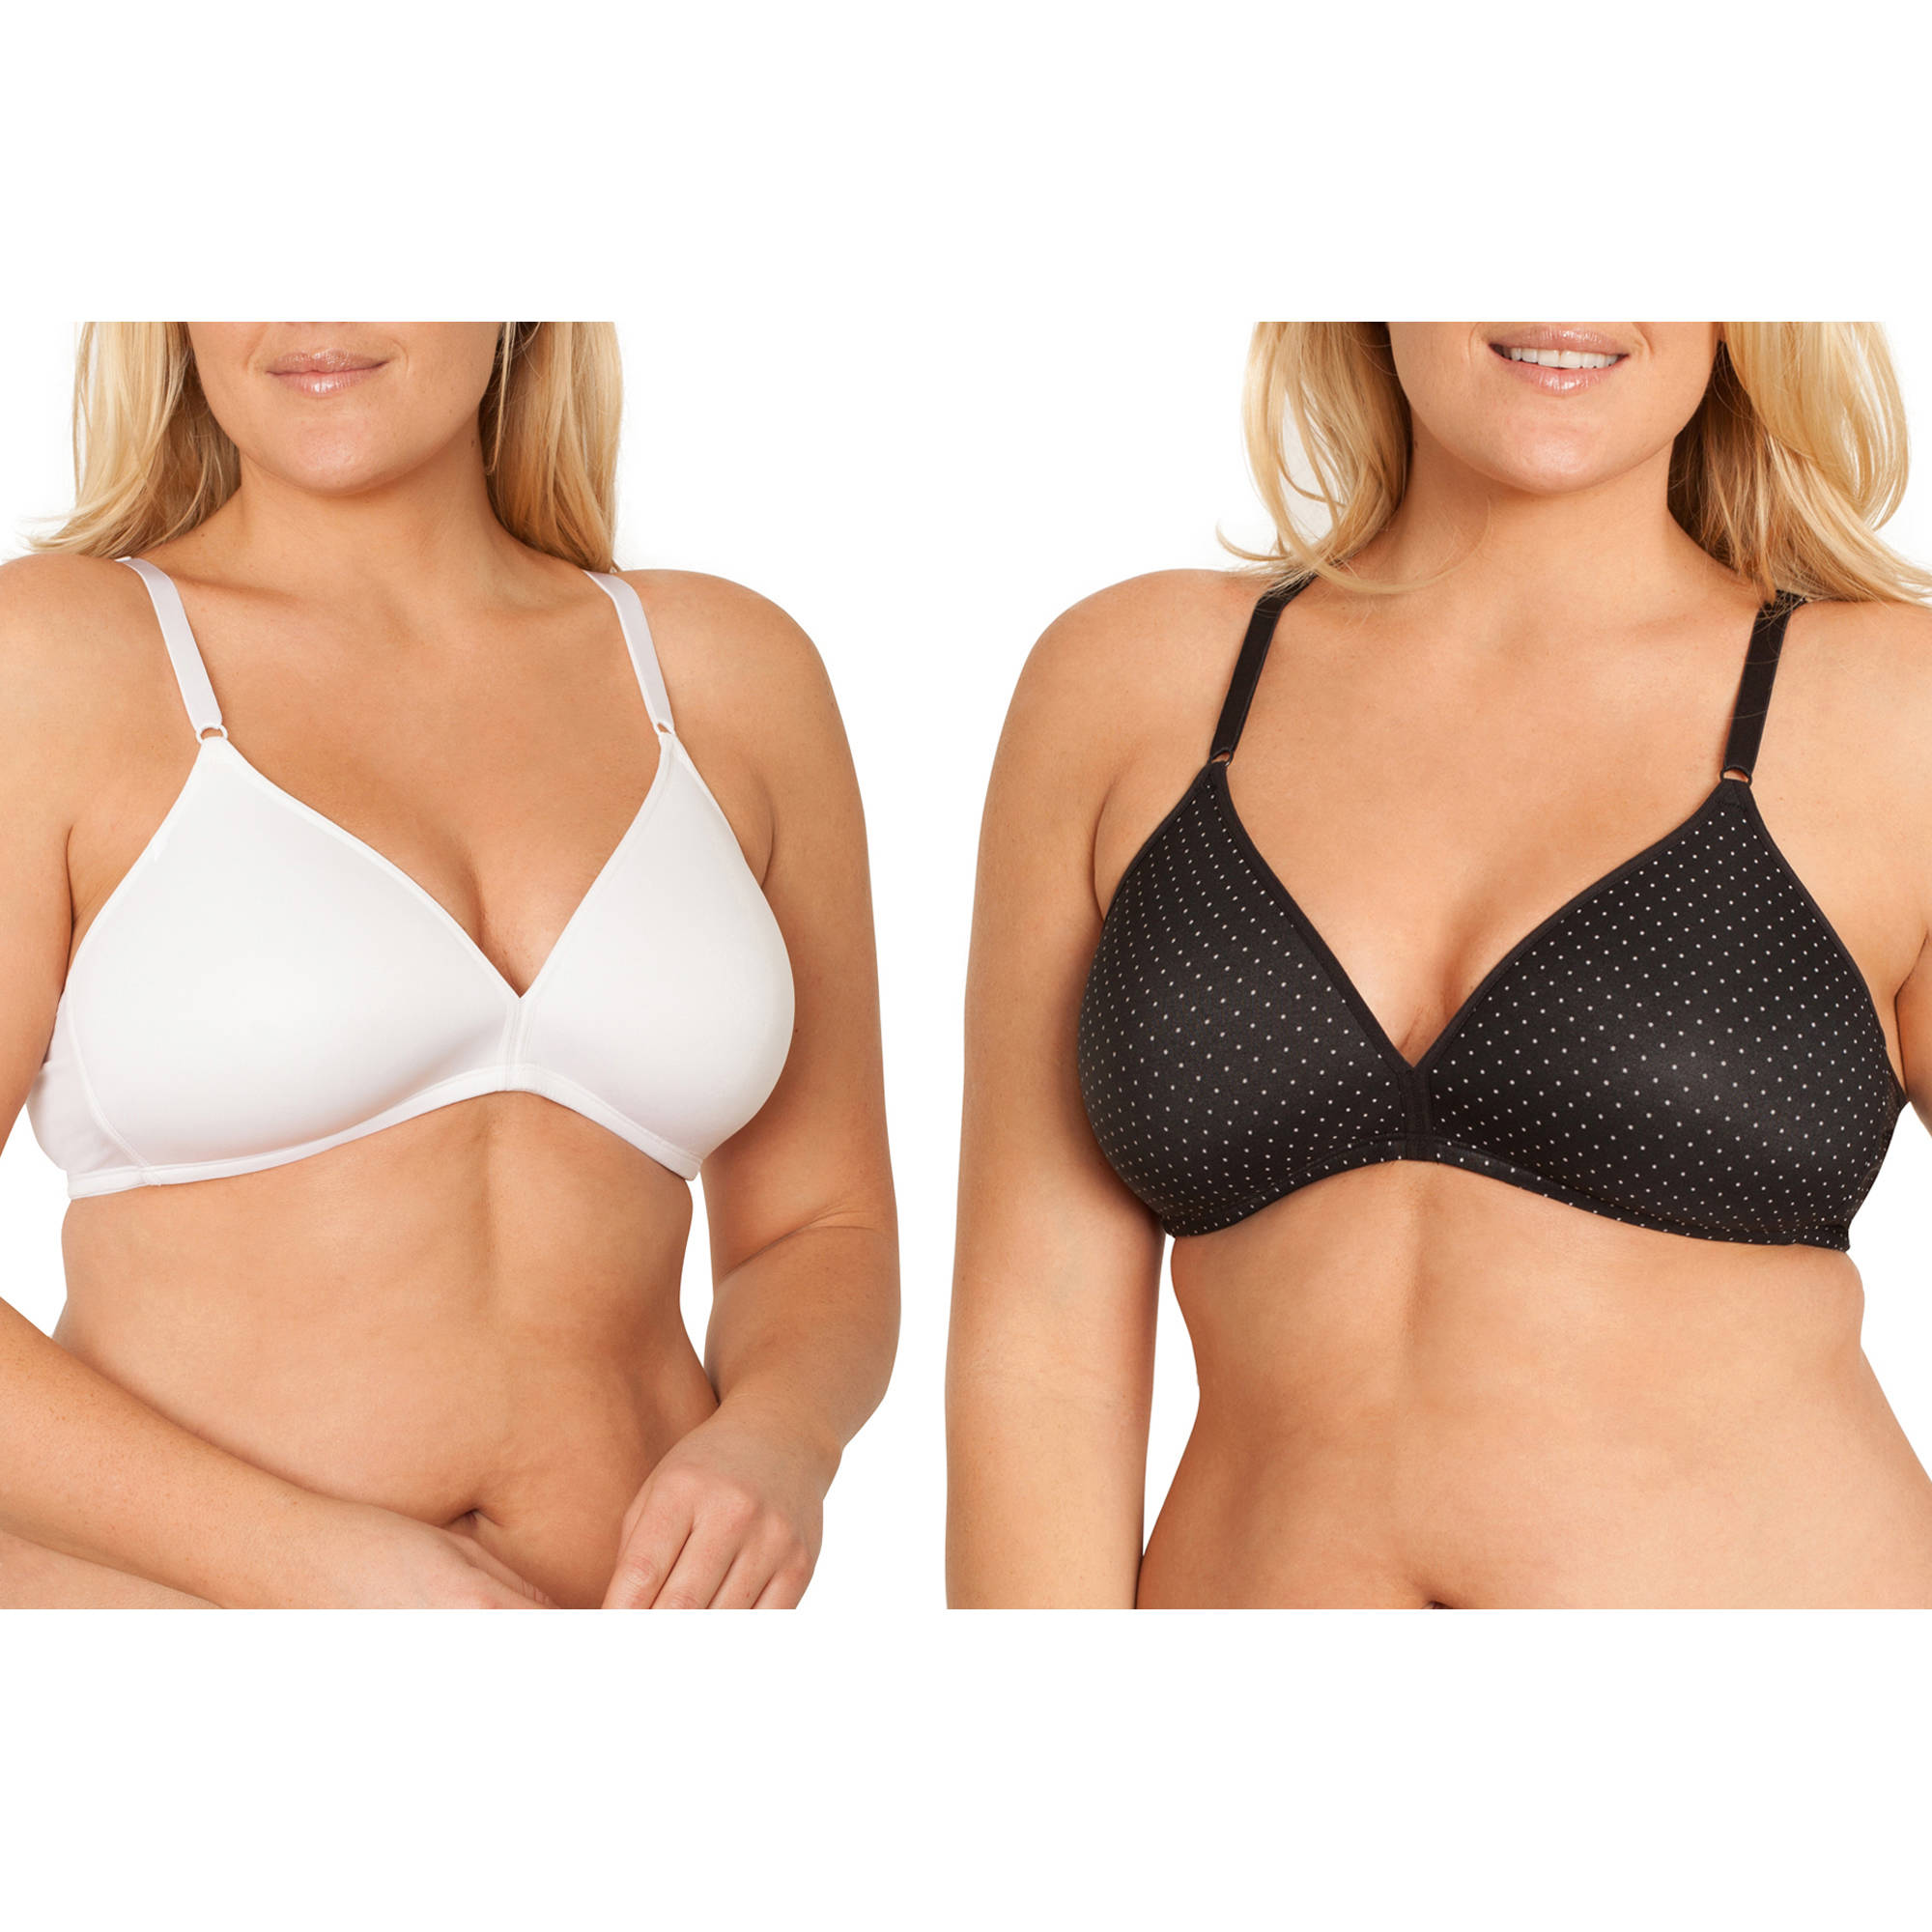 Fruit of the Loom Women's Wirefree Bra, Style FT488, 2-Pack